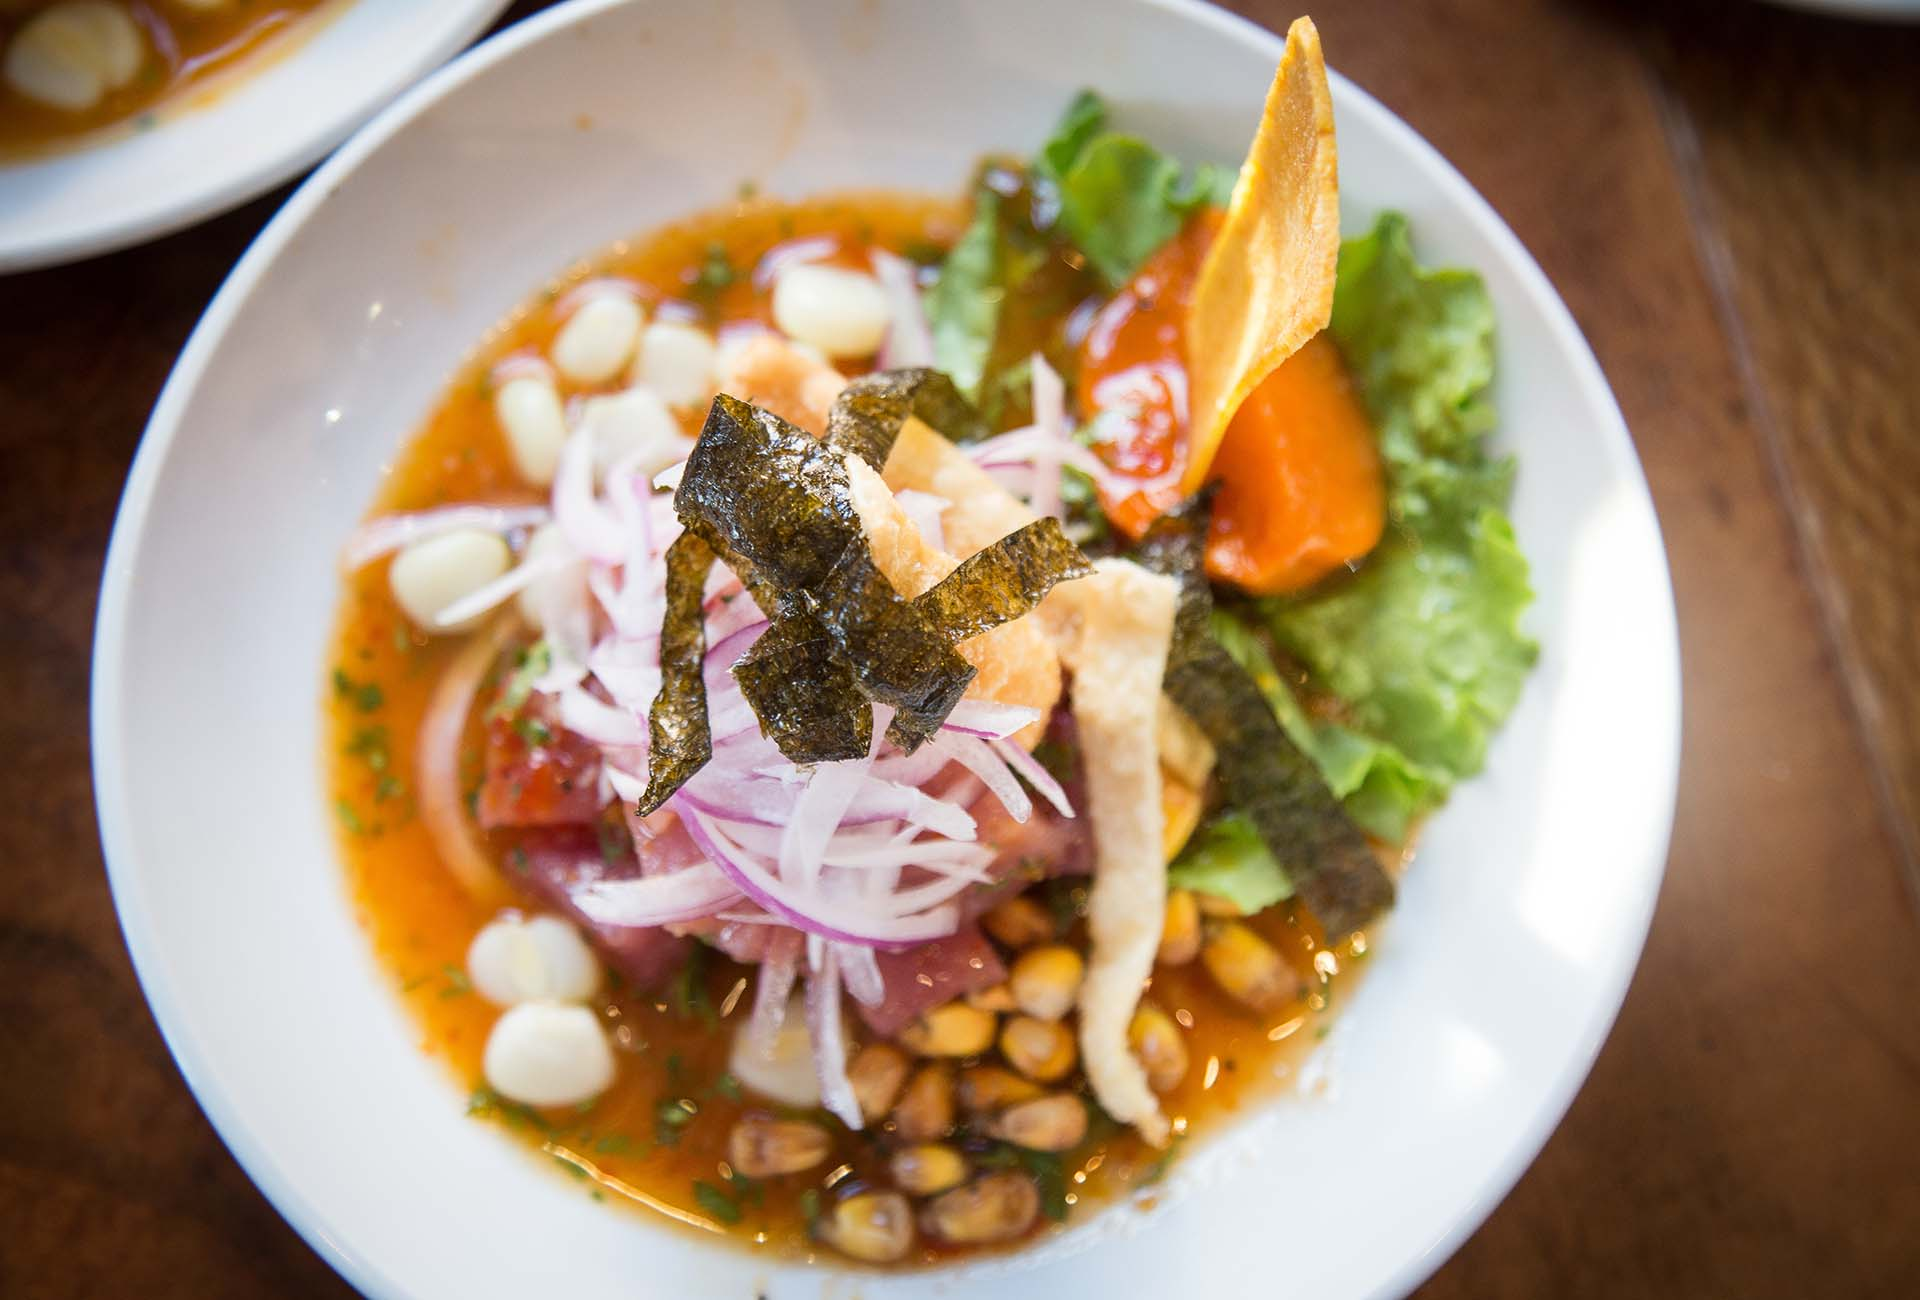 The Chino-Peruano Cebiche is served with a sweet rocoto pepper sauce and wonton chips